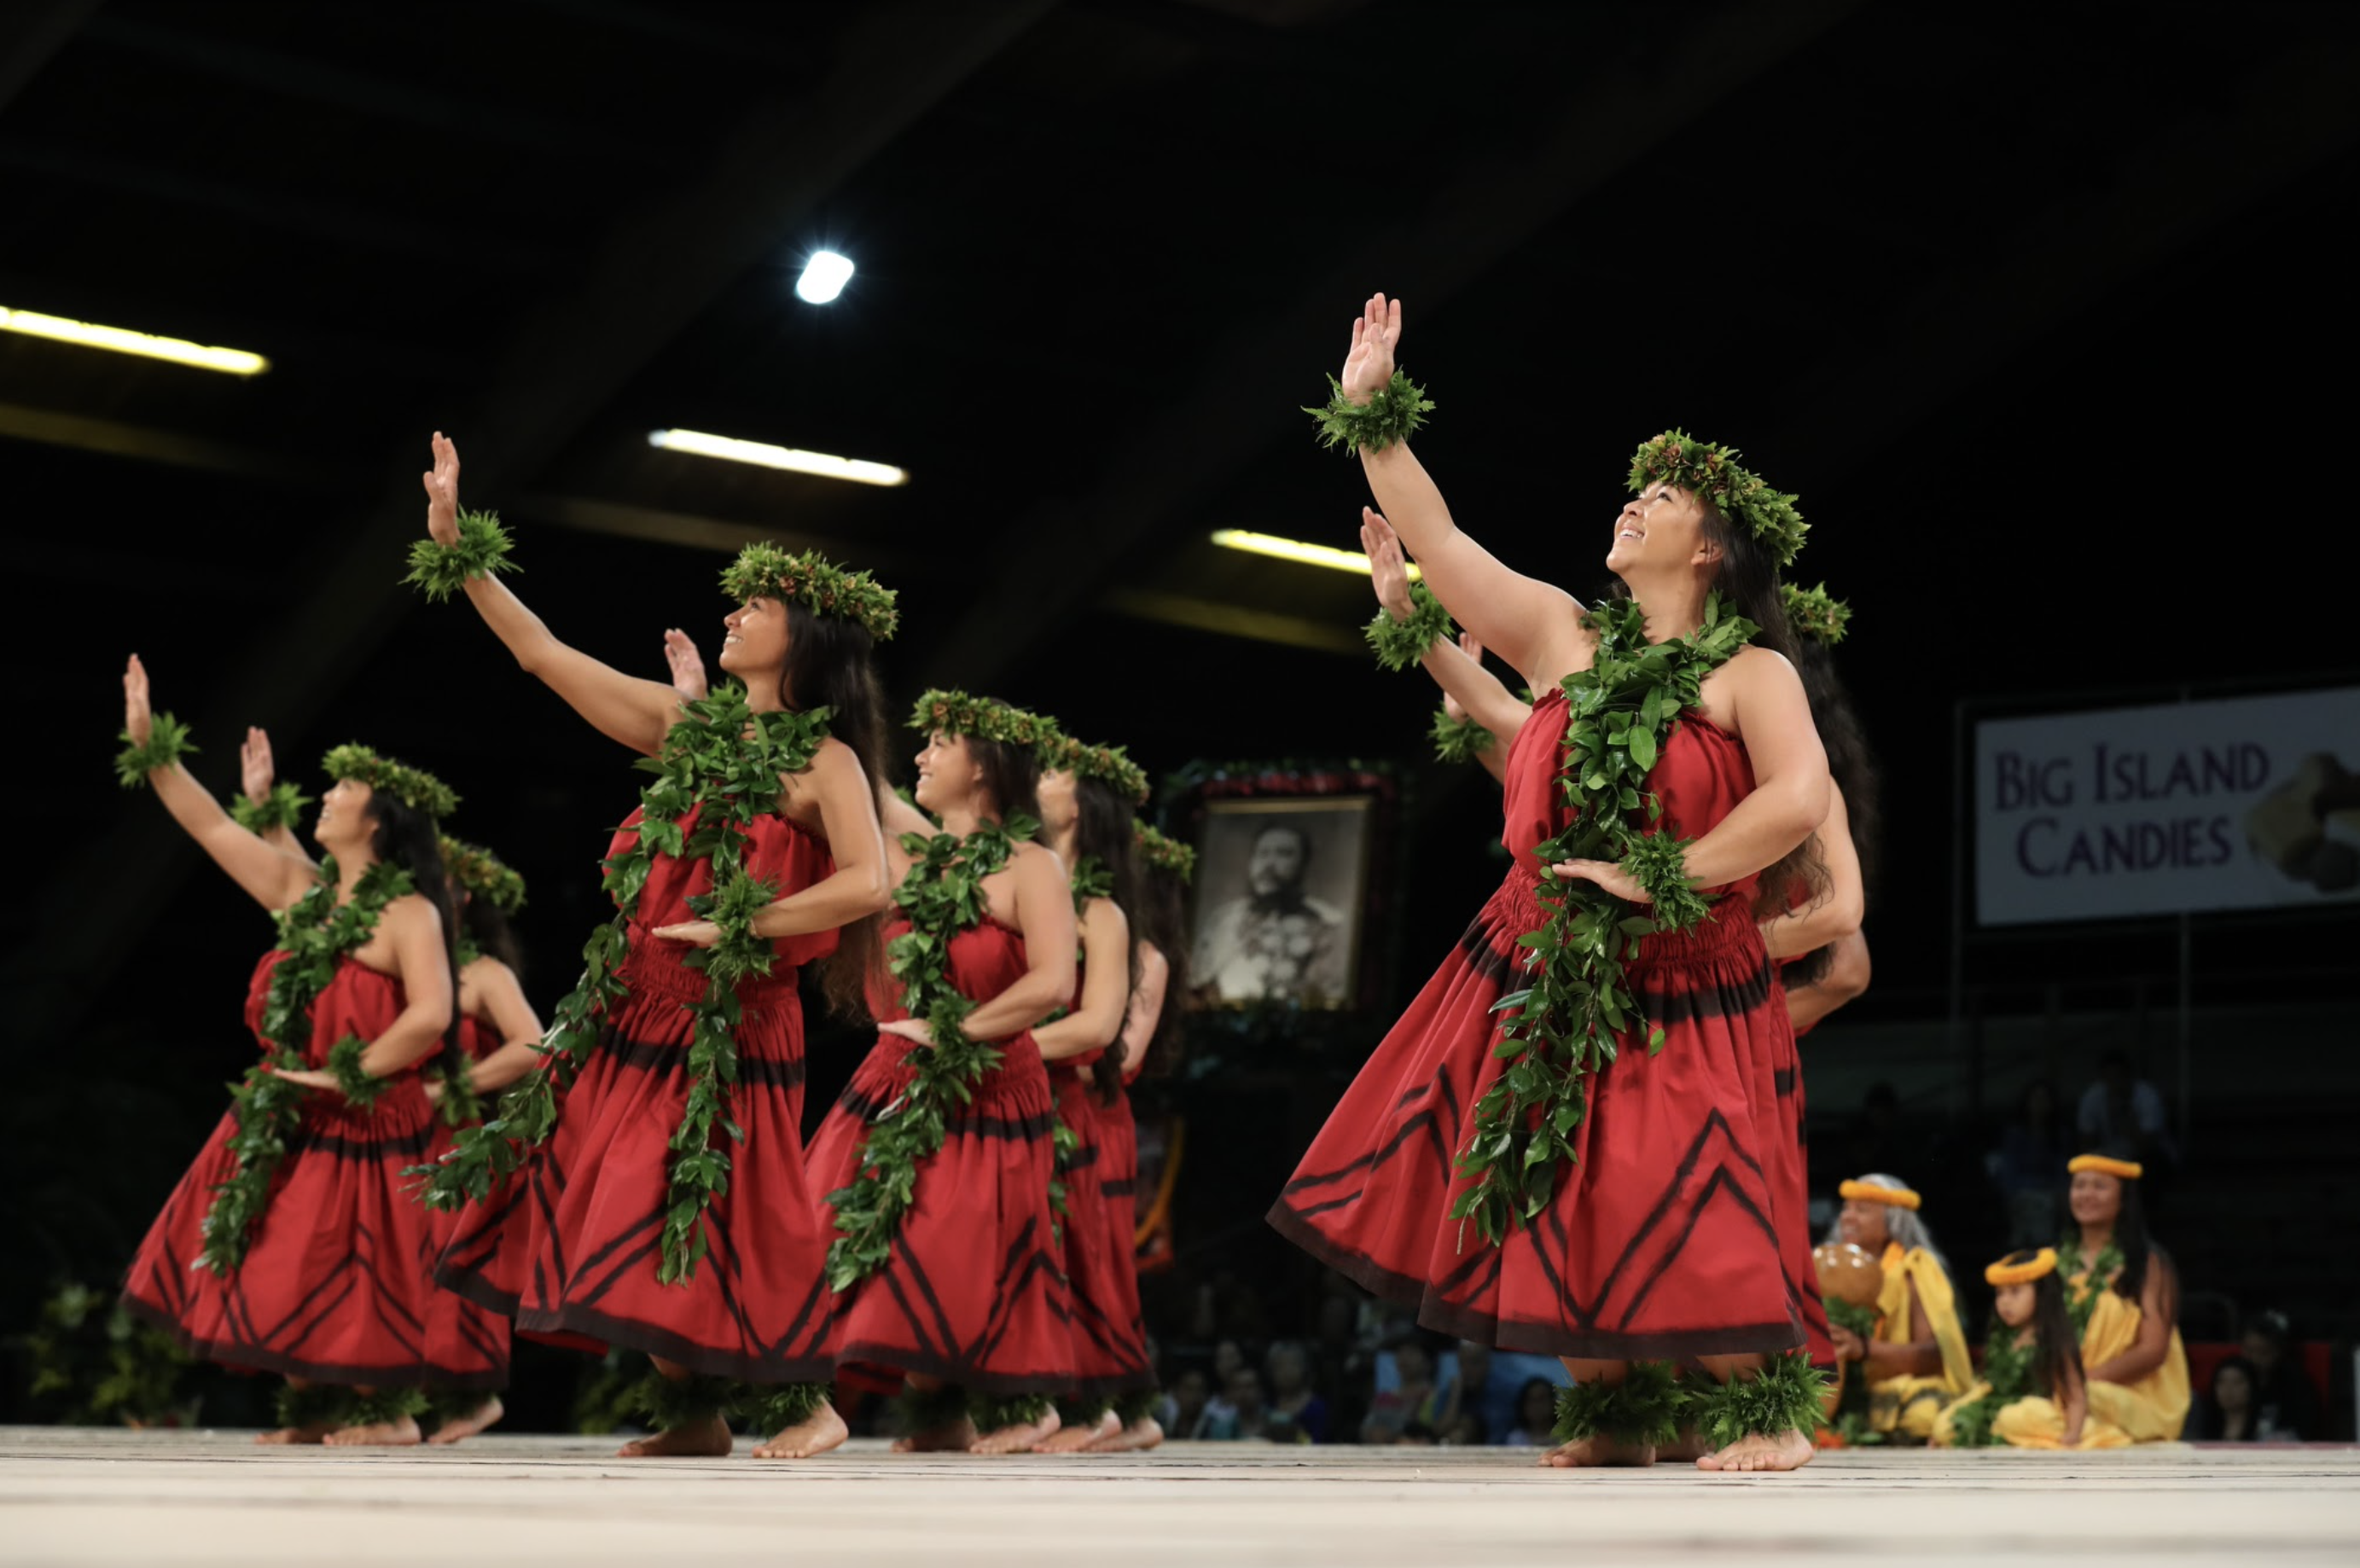 Merrie Monarch Festival May Be Held in 2021, But With No Live Audience